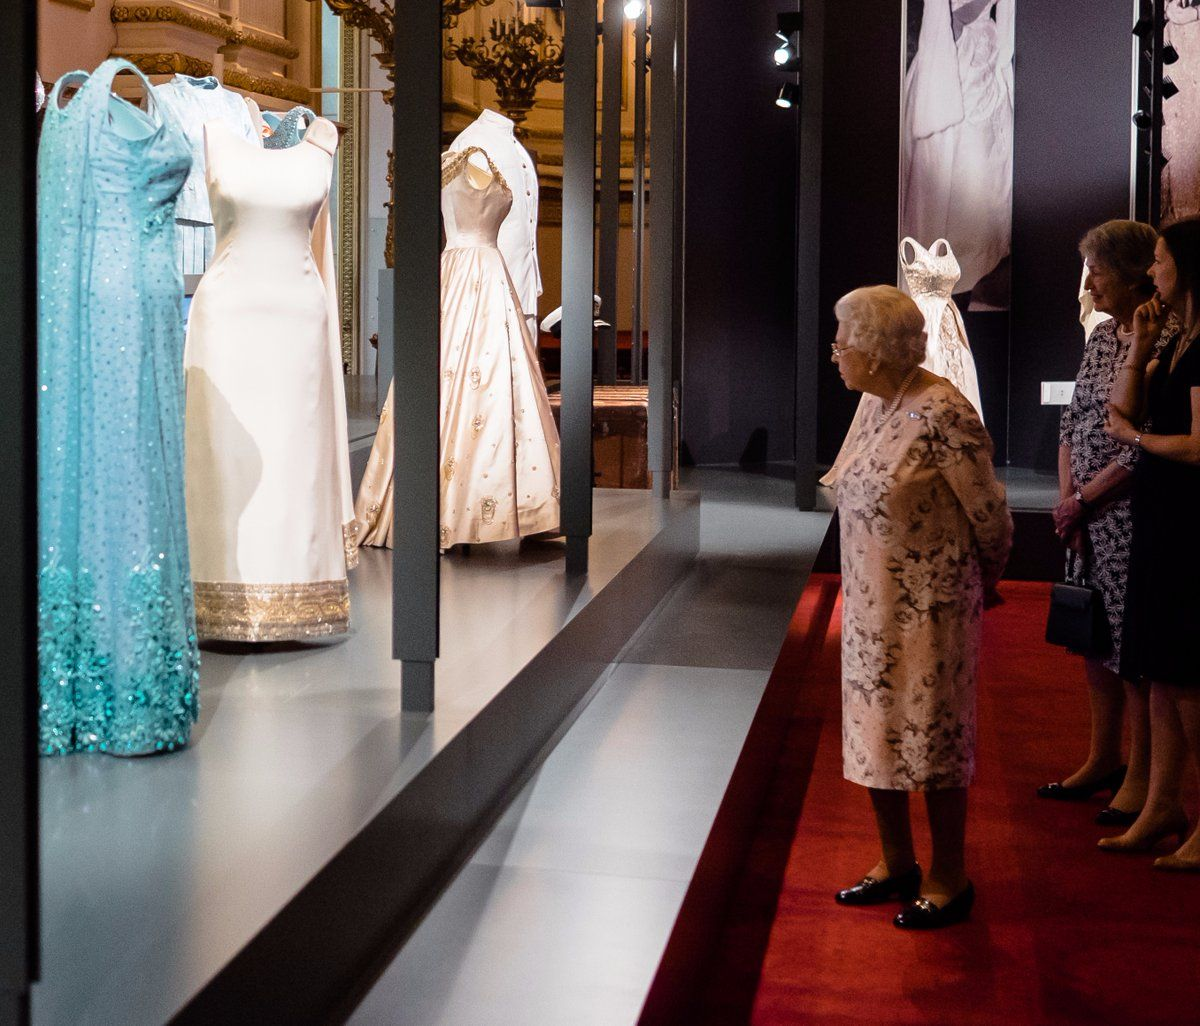 Garderobe Queen Elizabeth The Royal Family Royalfamily On Twitter Queen Elizabeth